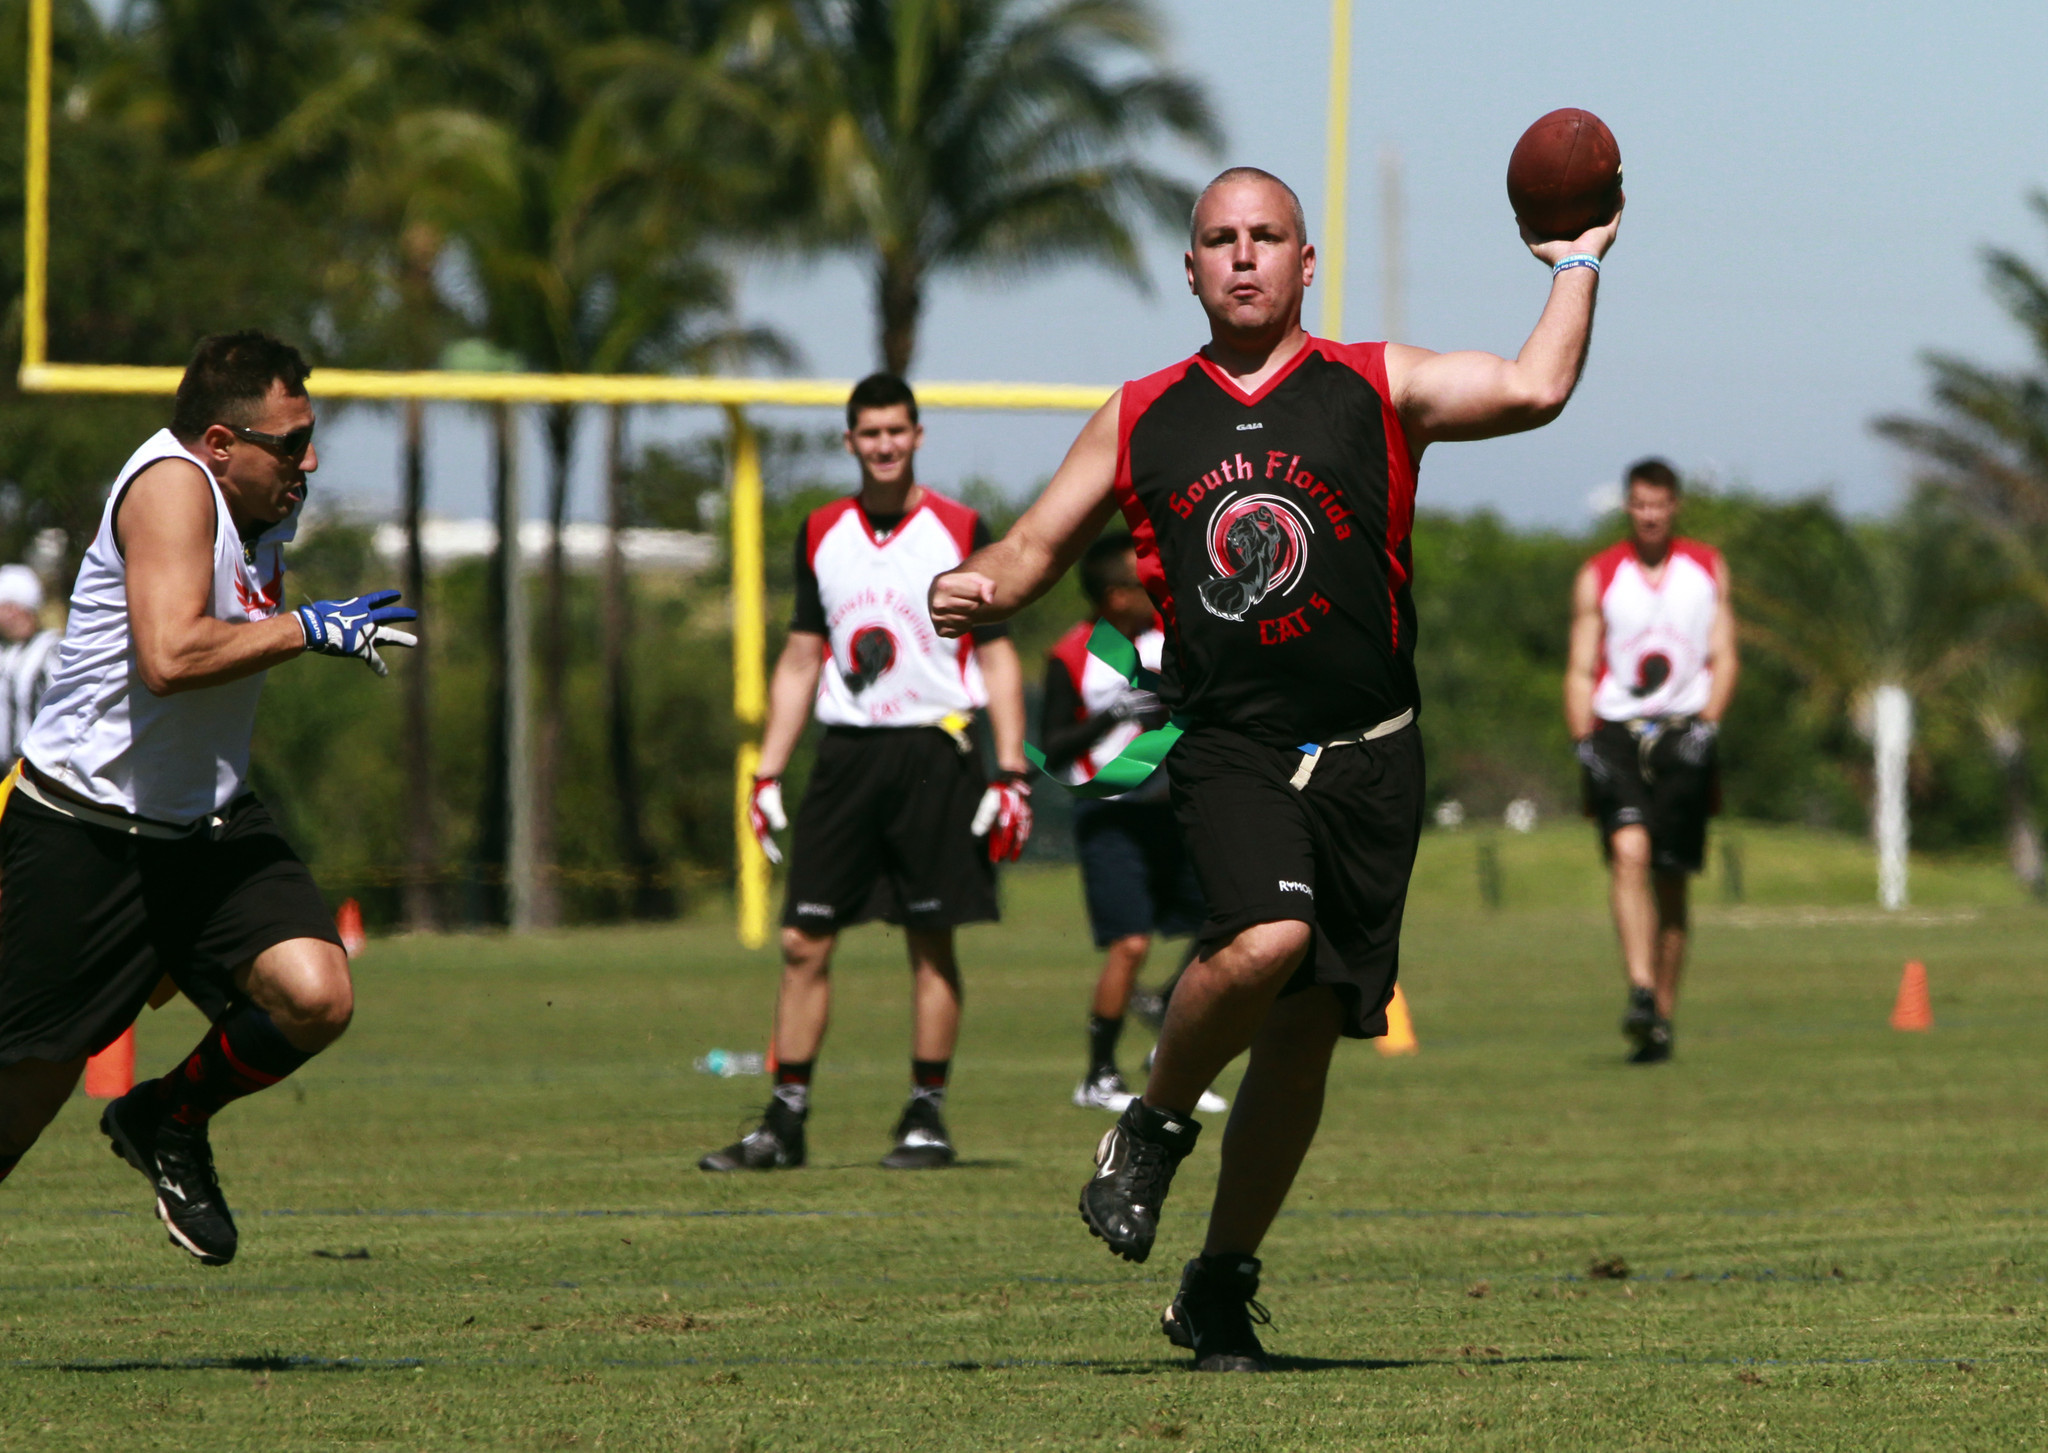 The Annual Florida Sunshine Cup National Gay Flag Football Tournament - Flag football tourney